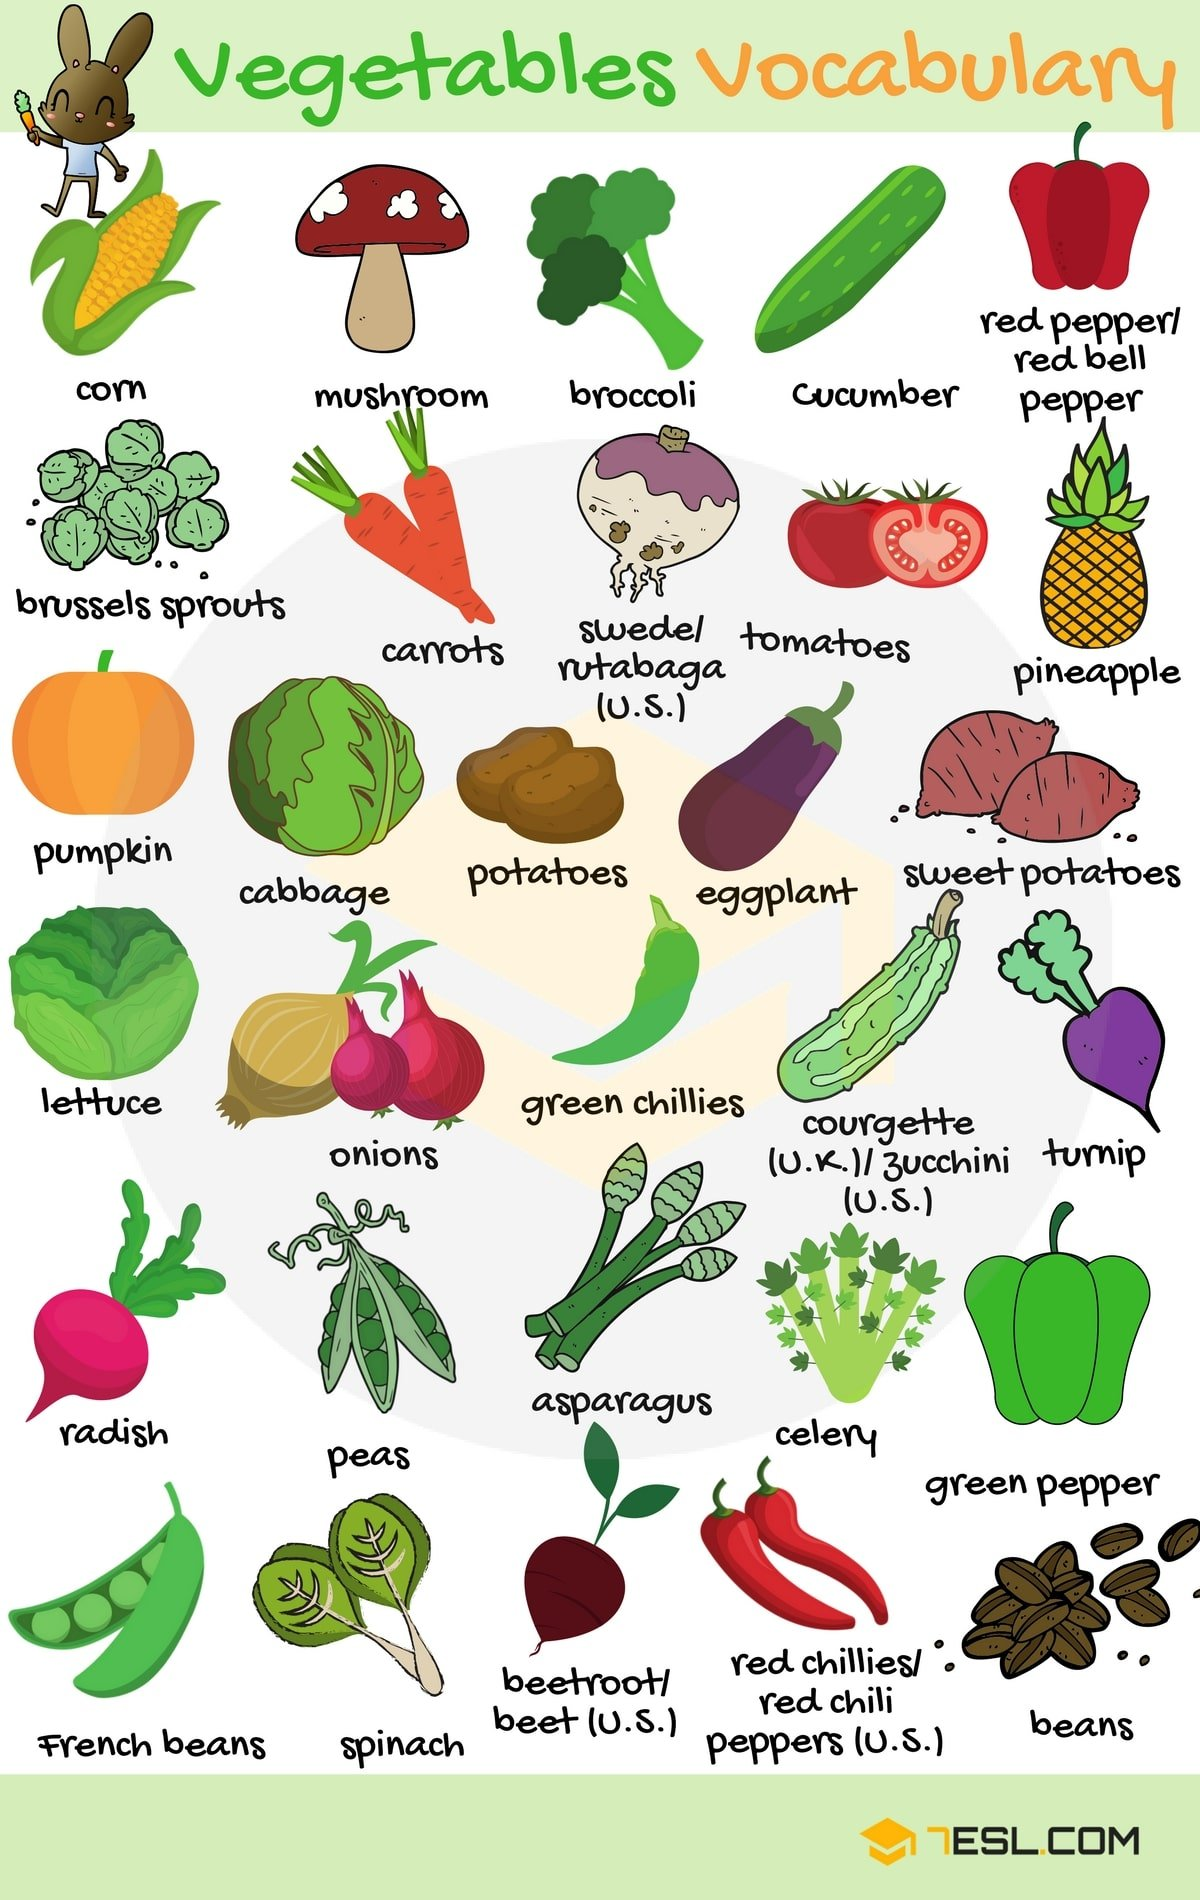 Vegetables Vocabulary in English